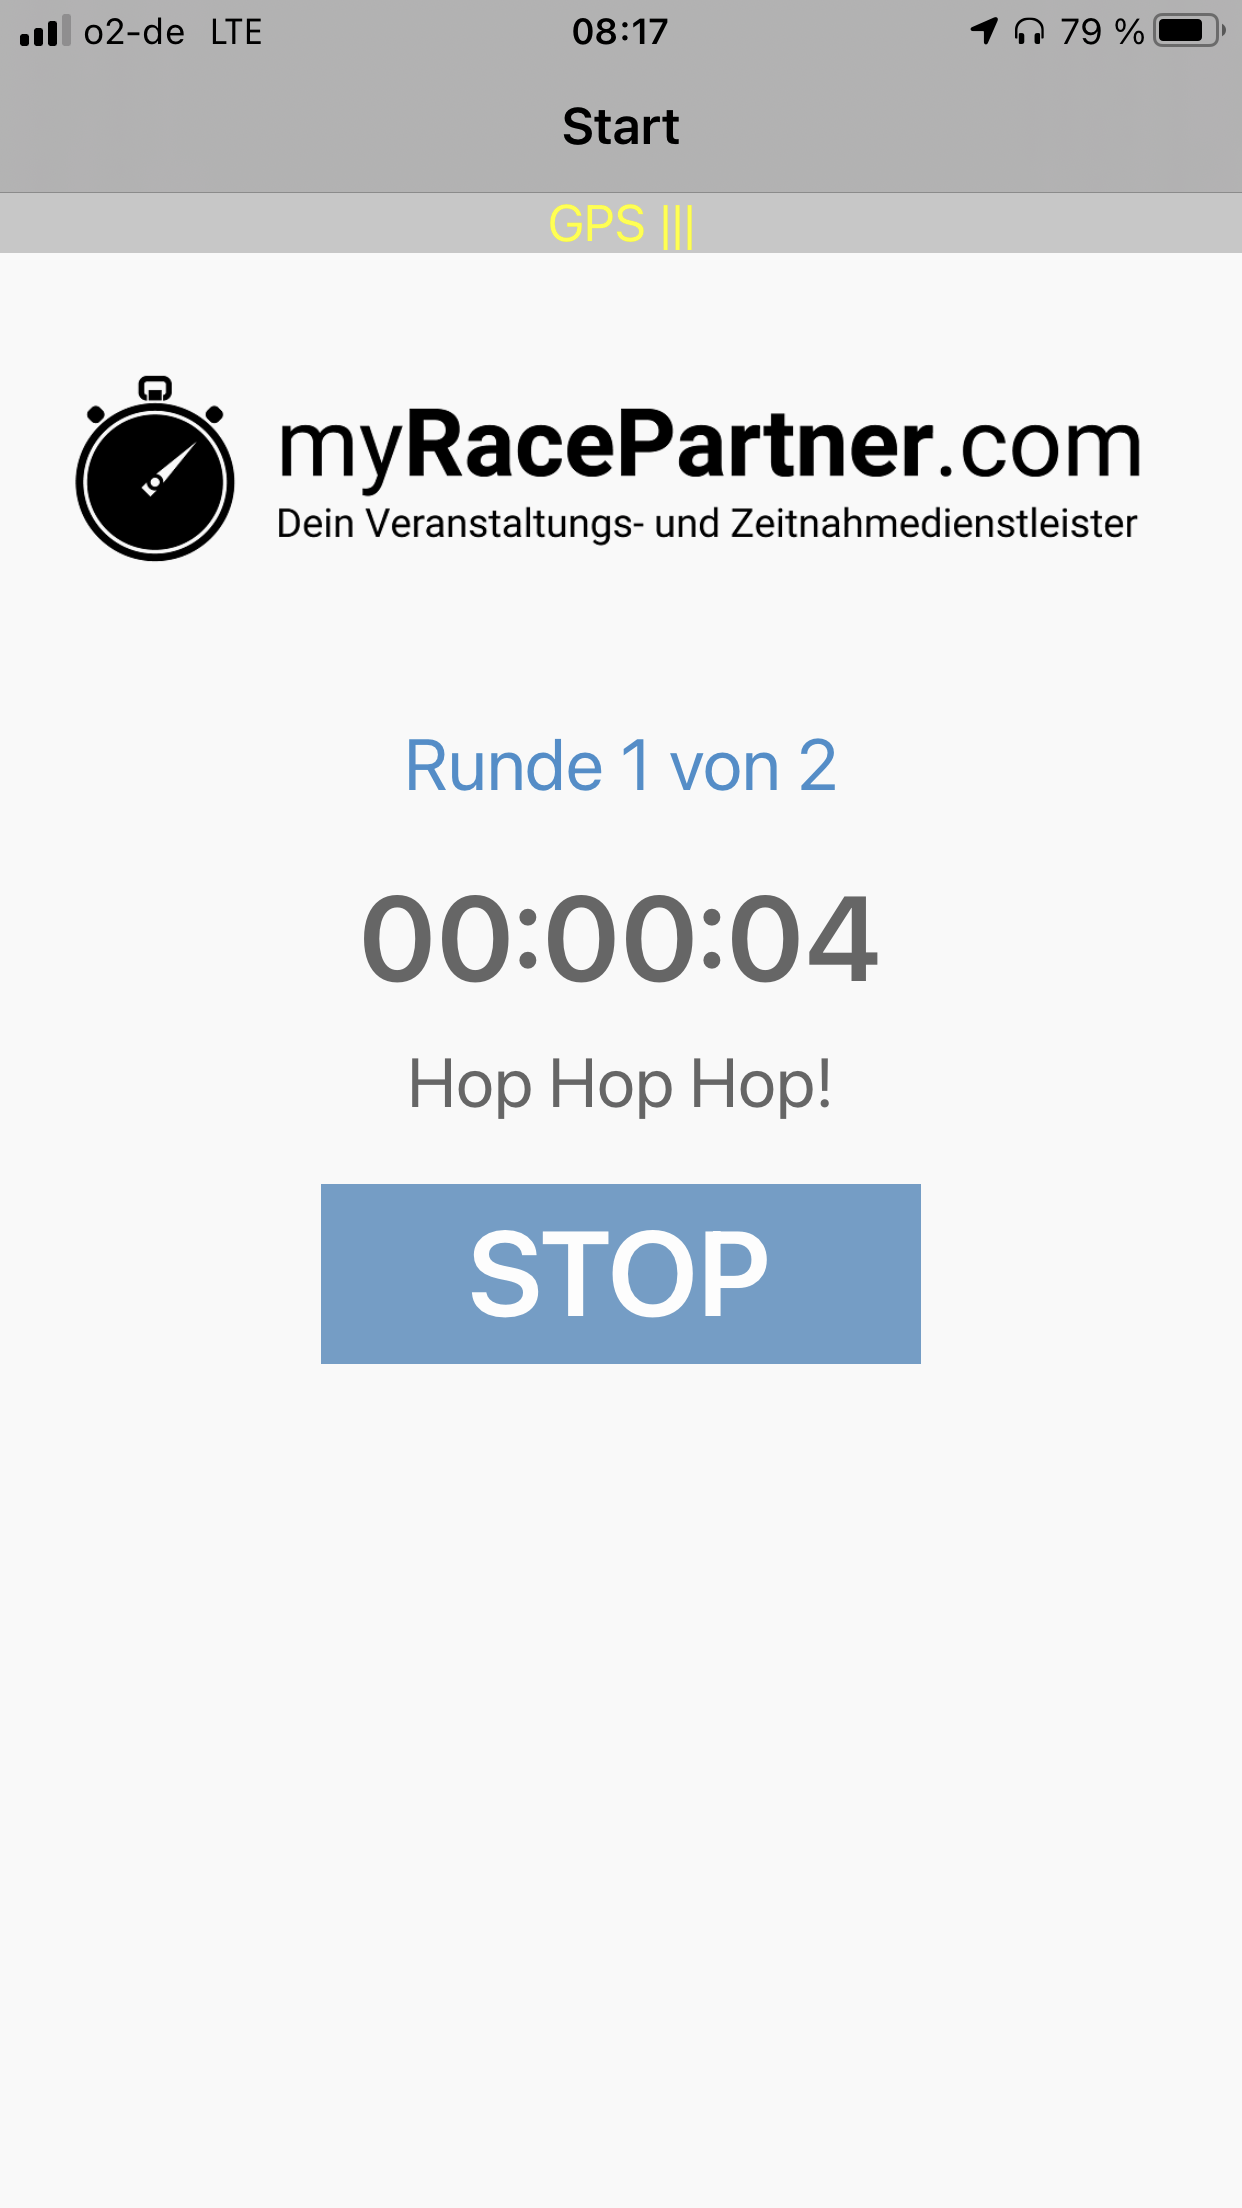 myRacePartner.com - Die App am Start 04